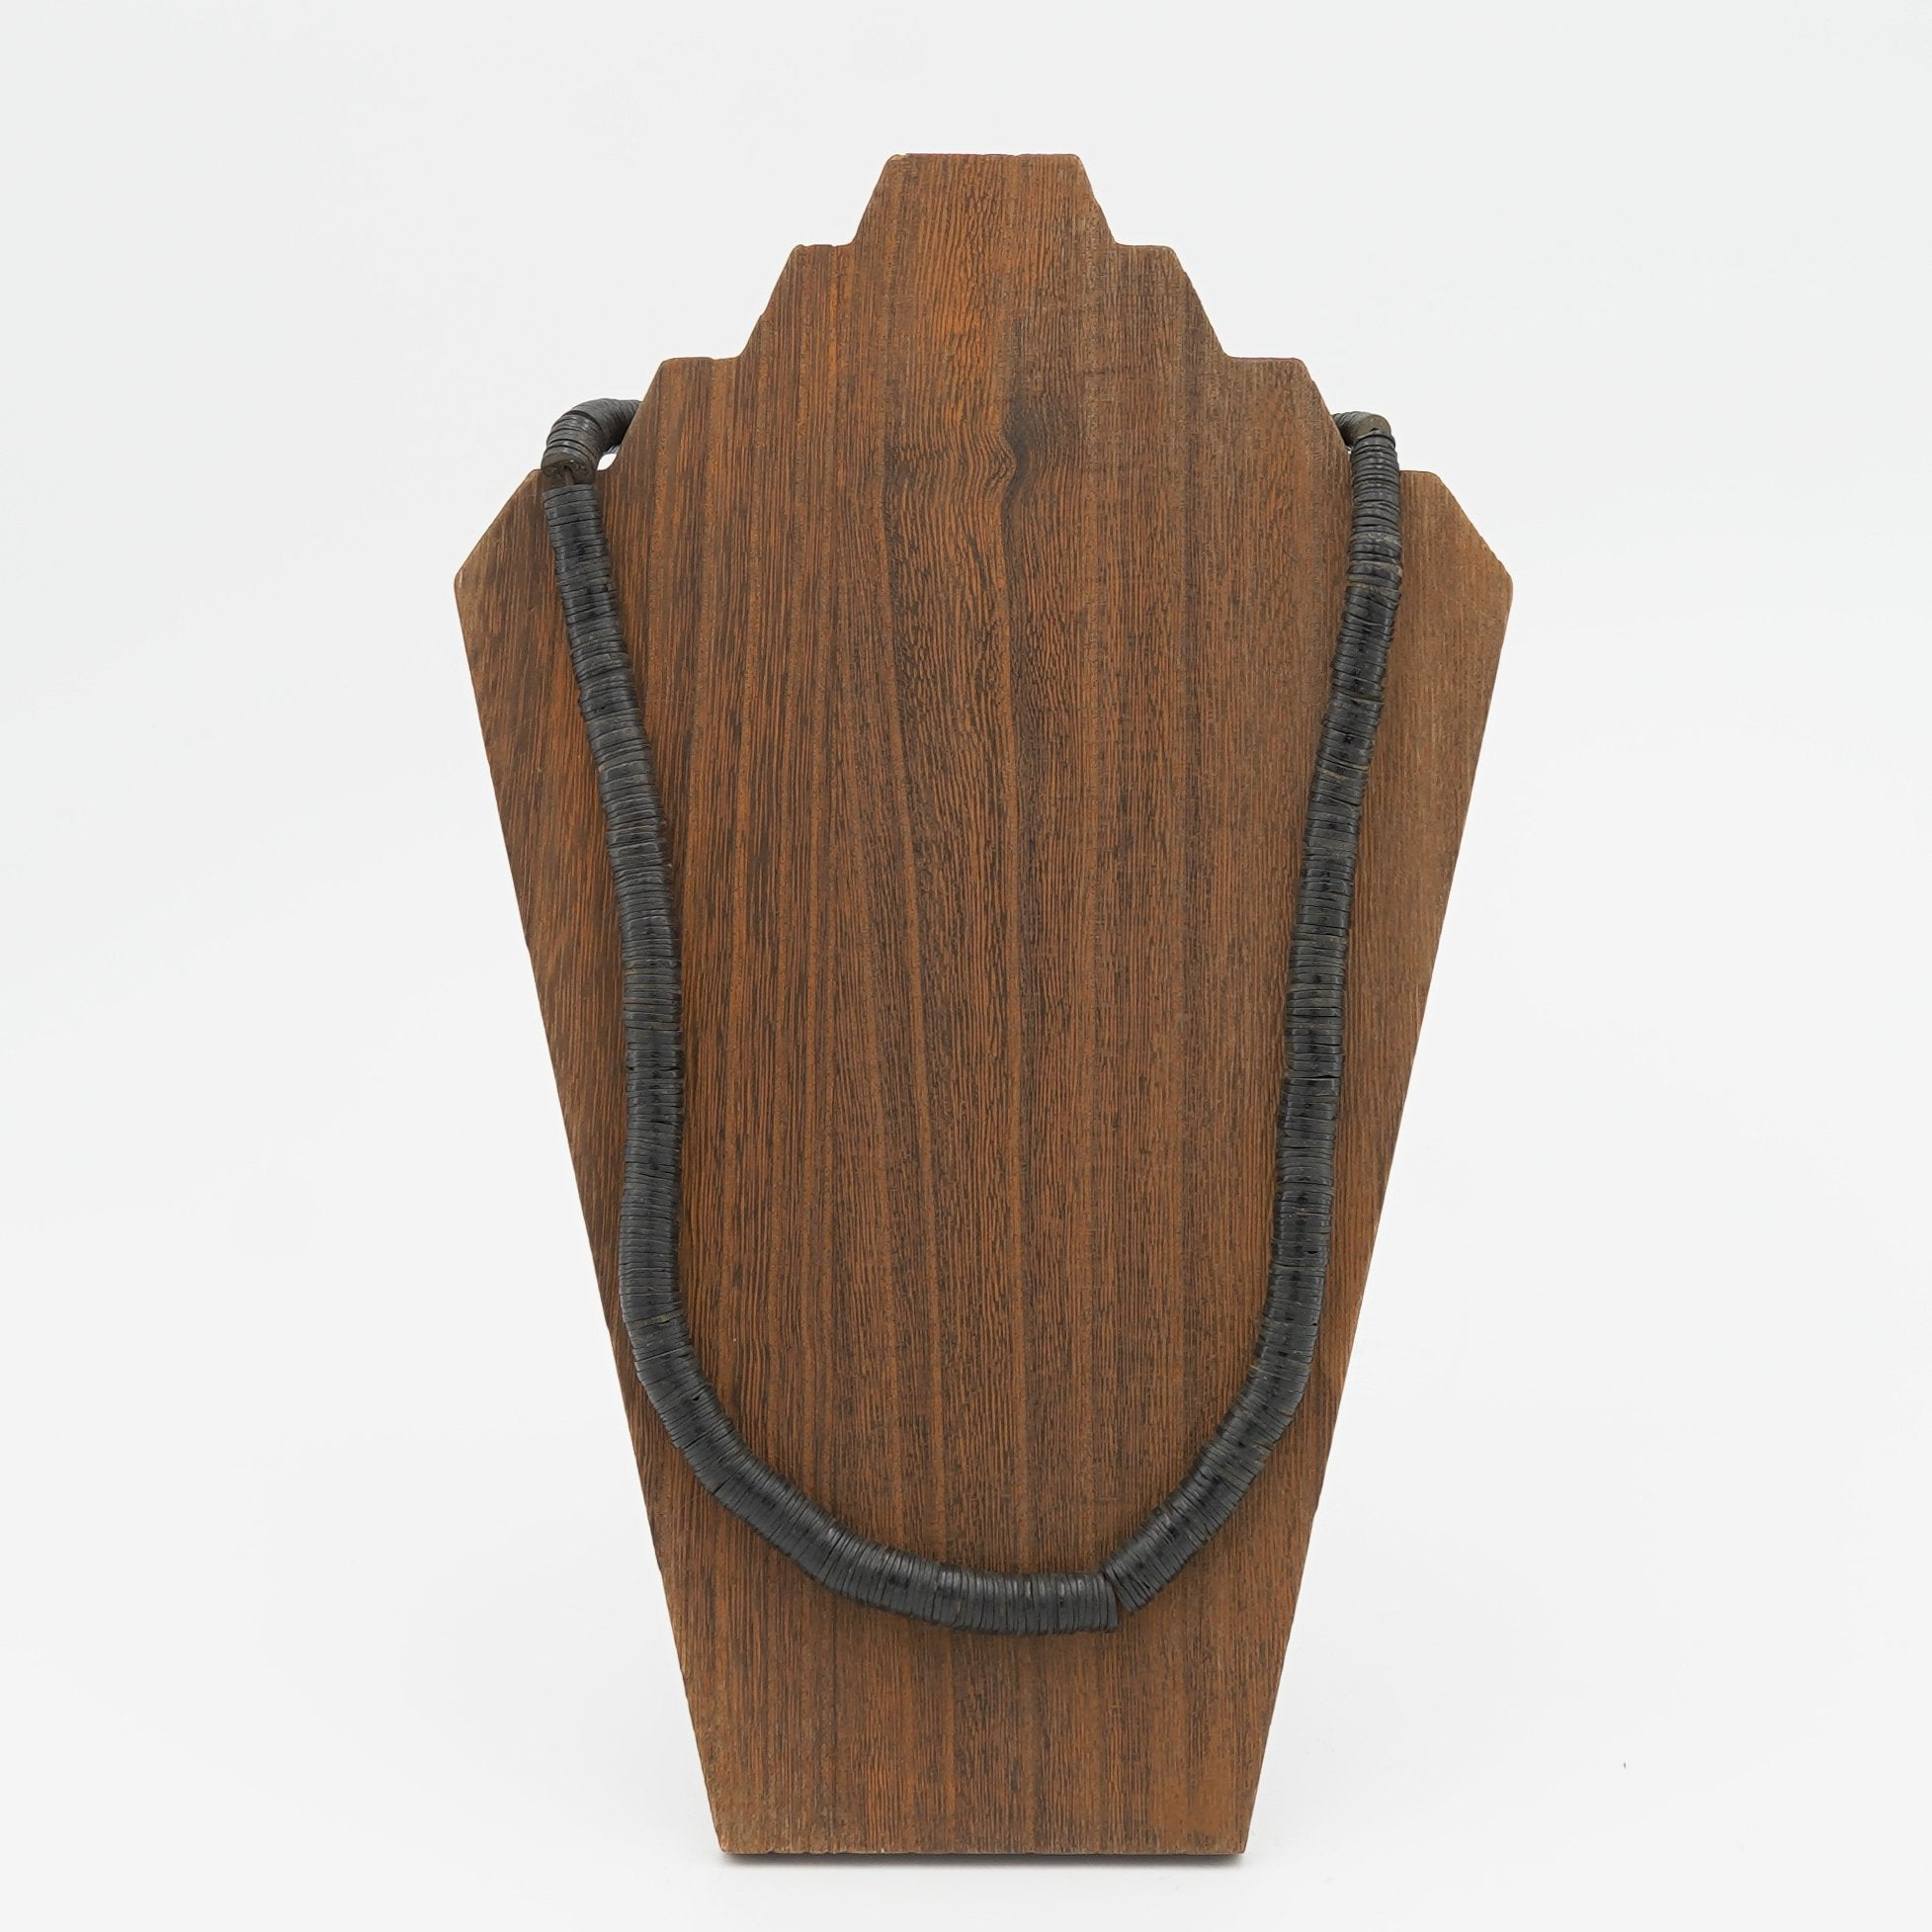 Hatshepsut Handcrafted Necklace